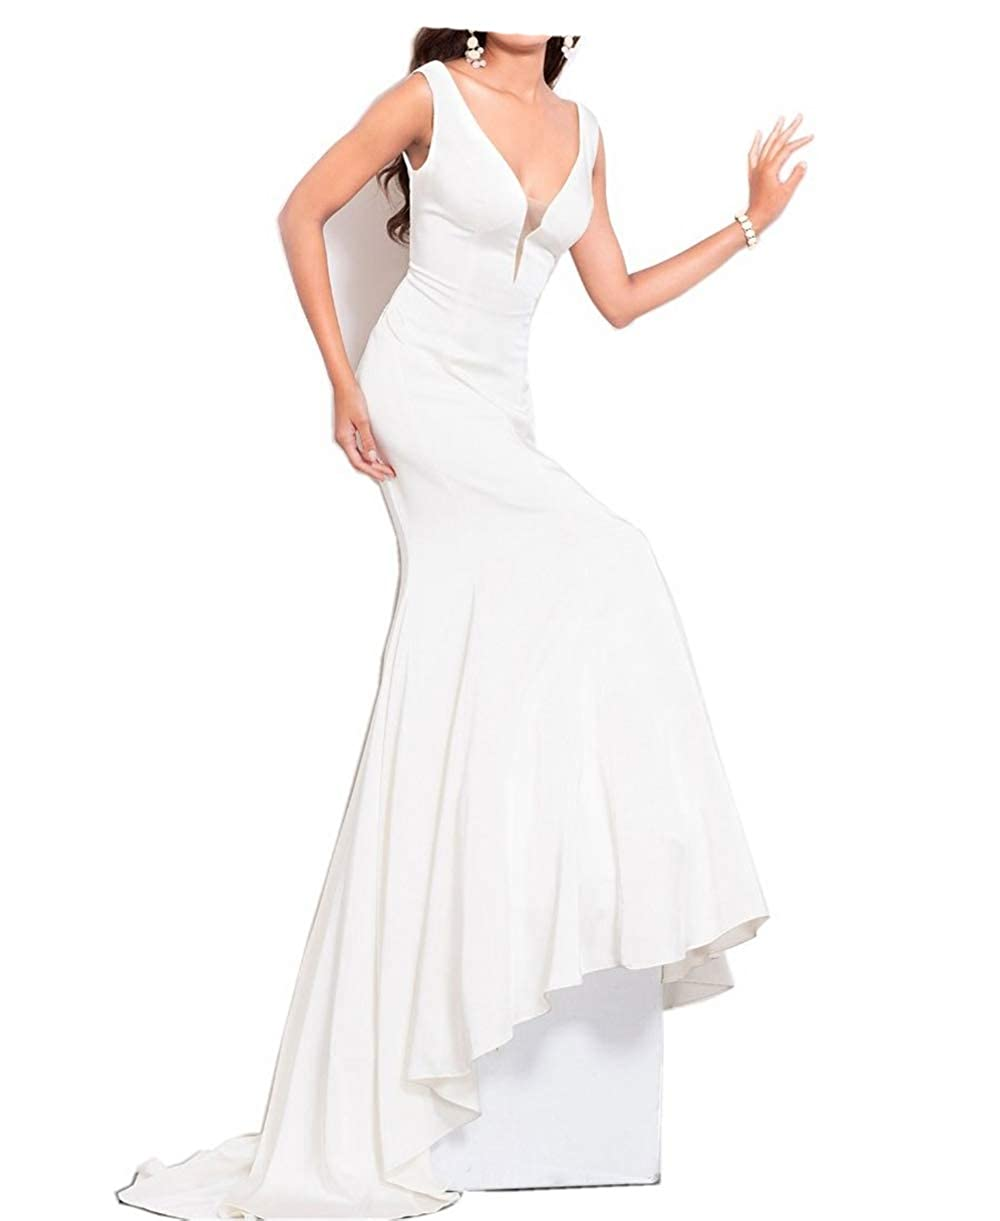 White ANGELA Women's V Neck Mermaid Long Evening Dresses Formal Wedding Party Gowns